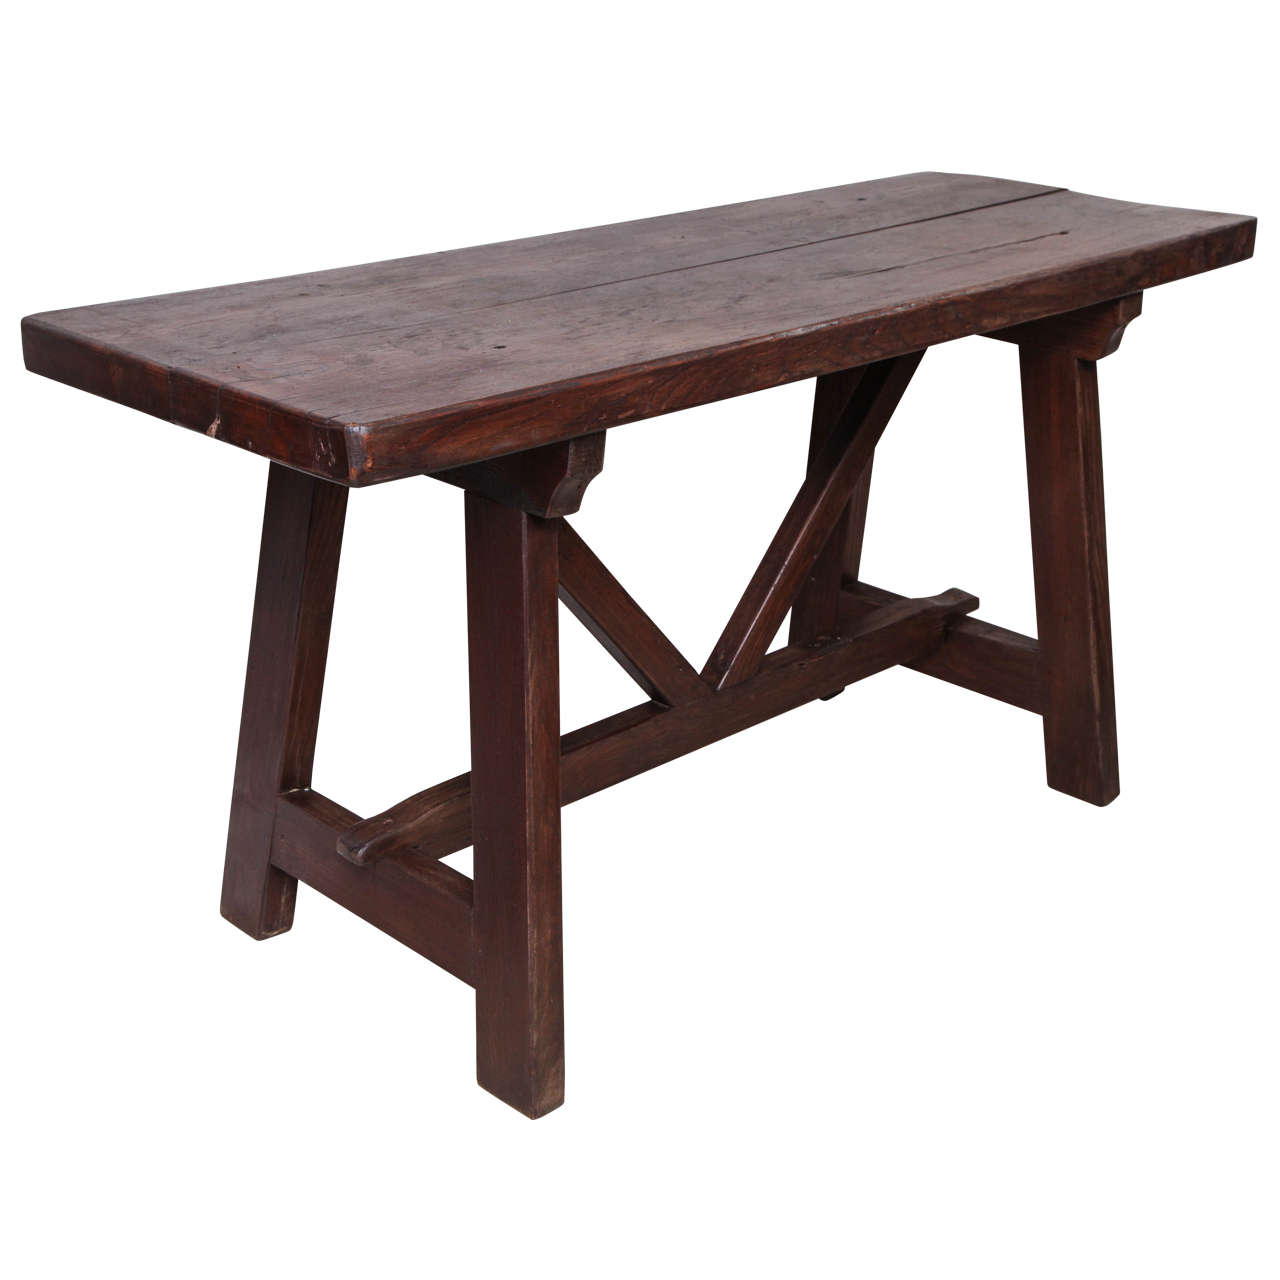 Late 18th-19th Century Walnut Table